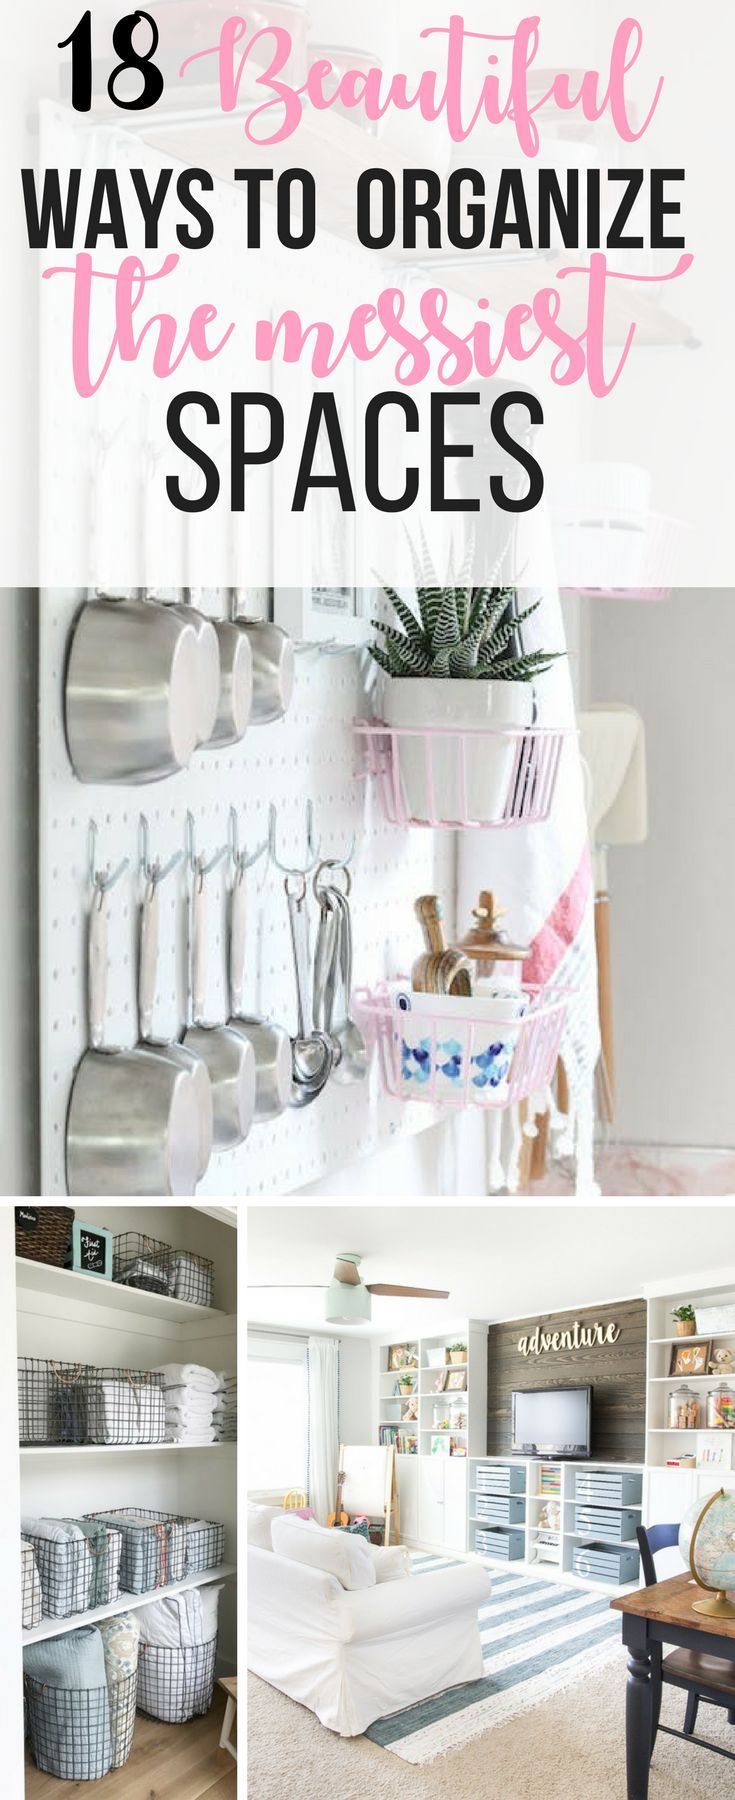 18 Beautiful Ways To Organize The Messiest Spaces | Organizations ...